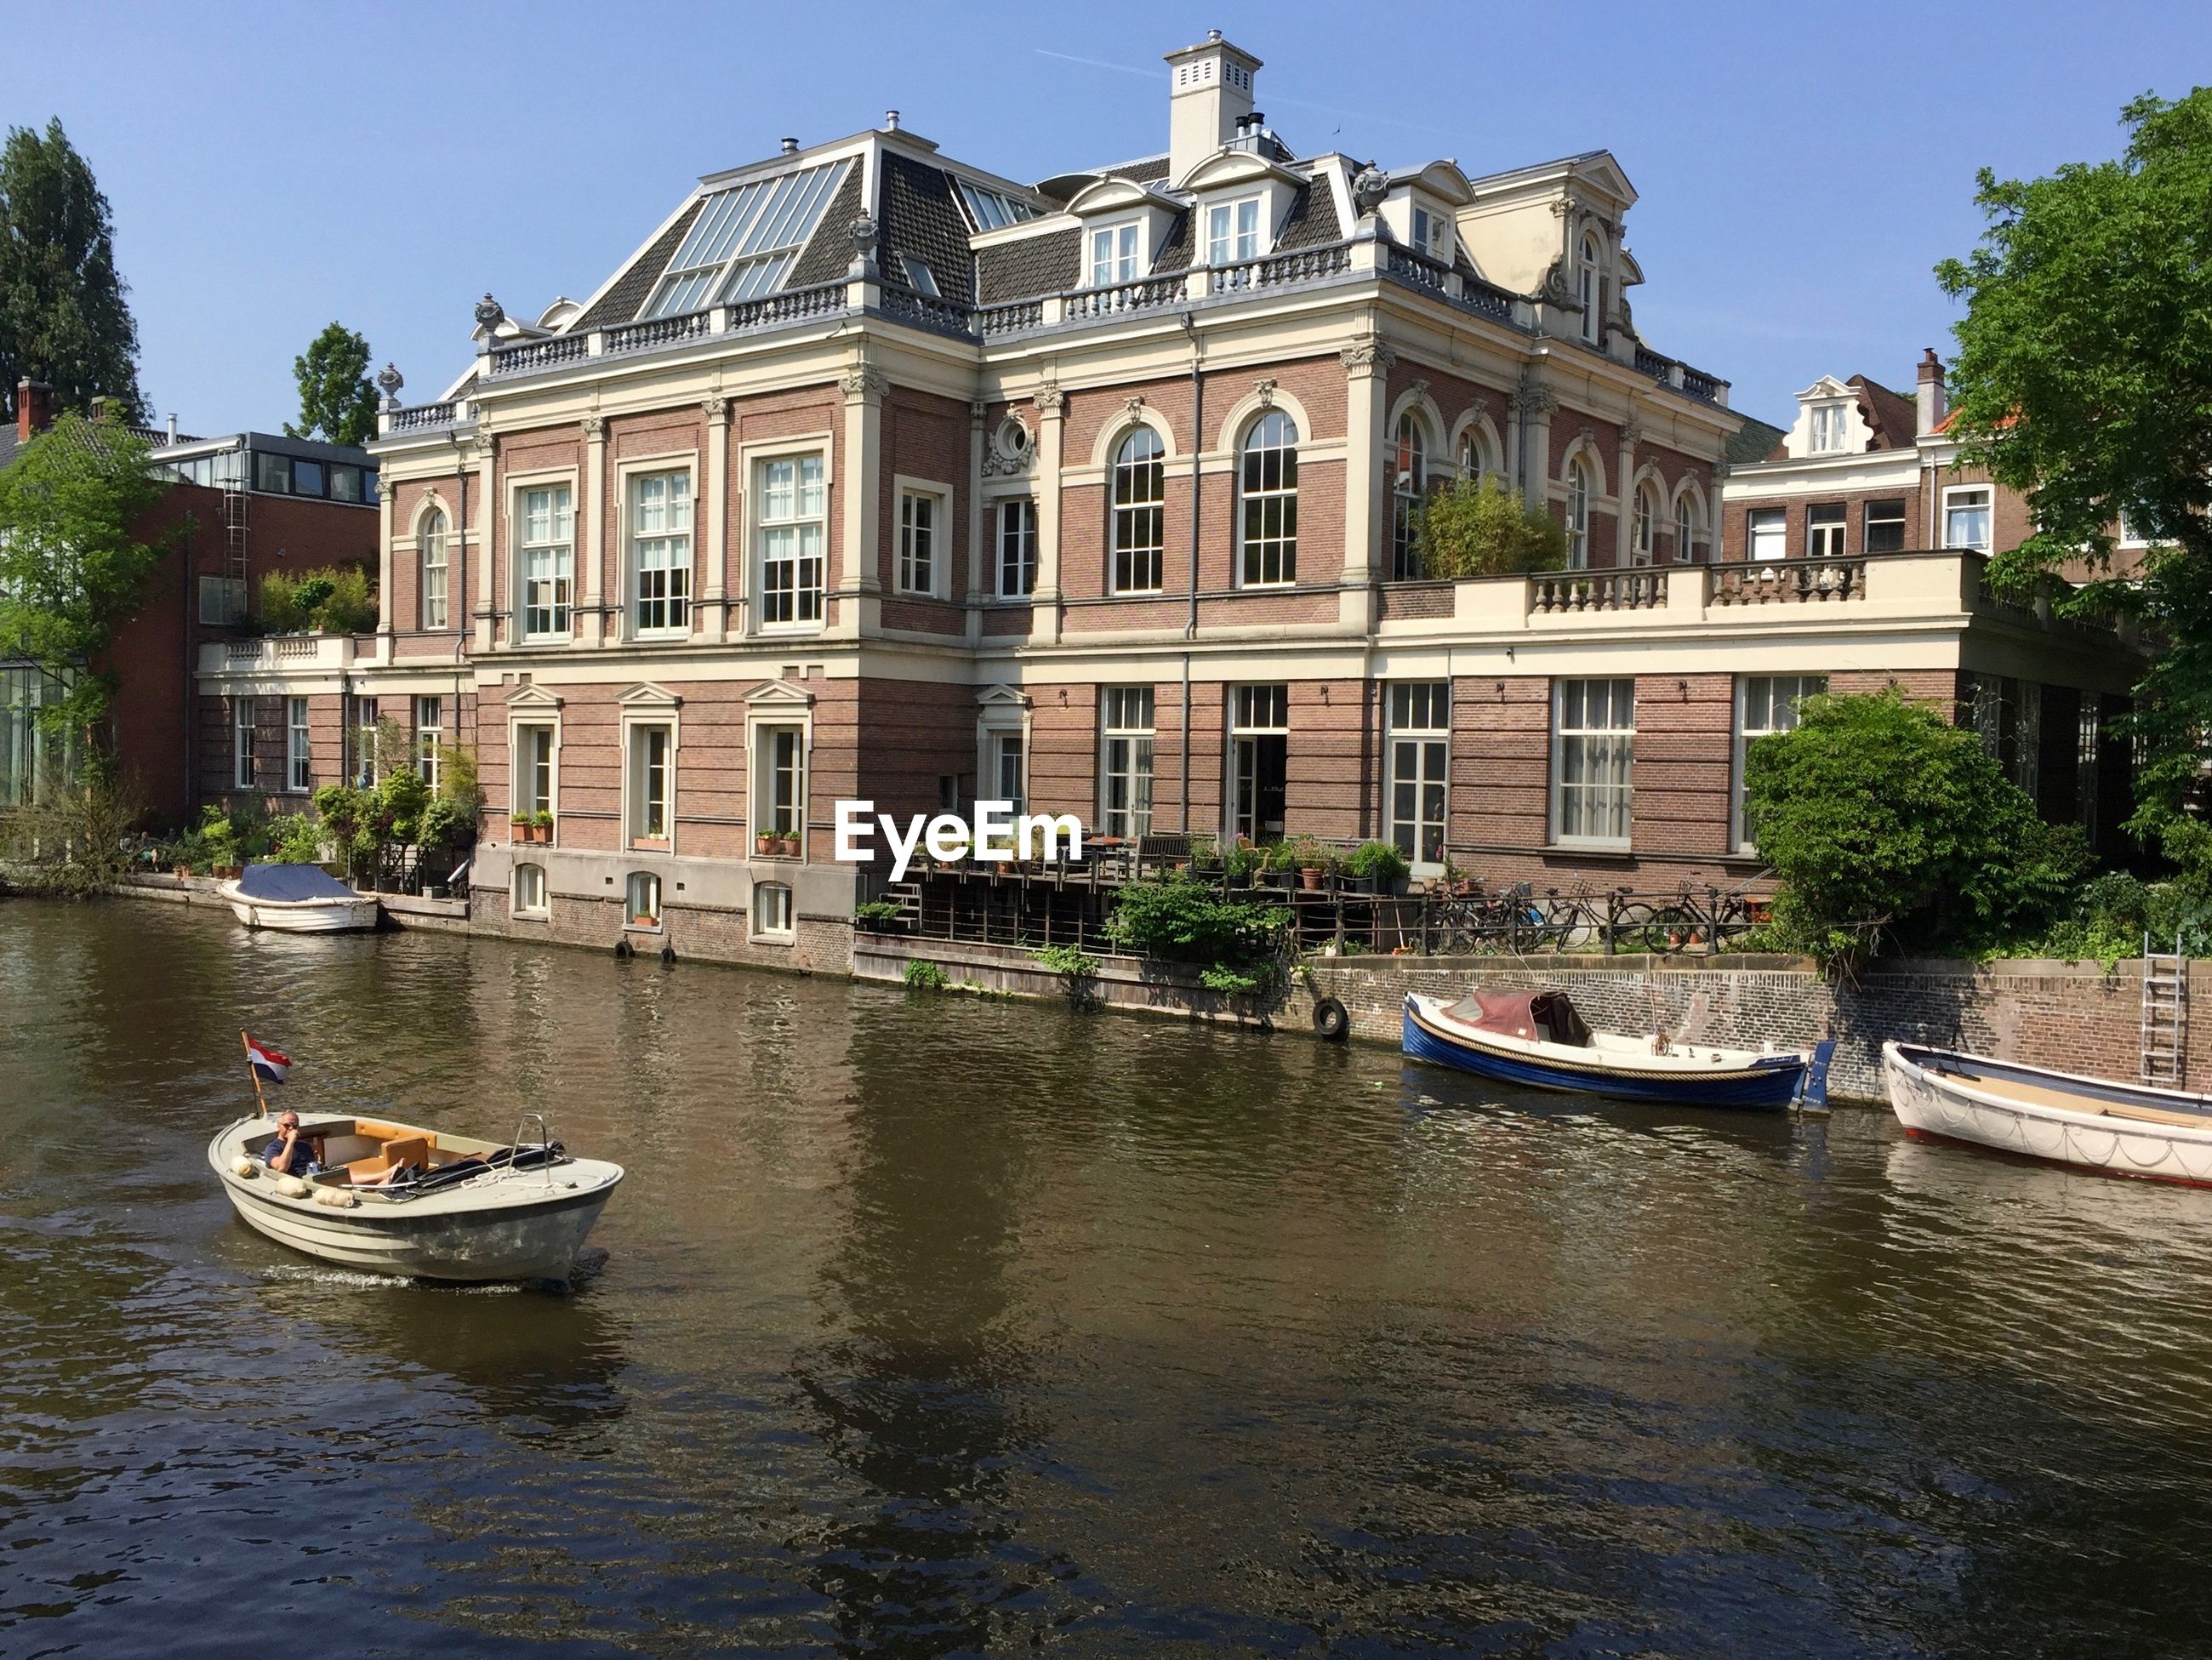 BOATS IN CANAL BY BUILDINGS AGAINST SKY IN CITY